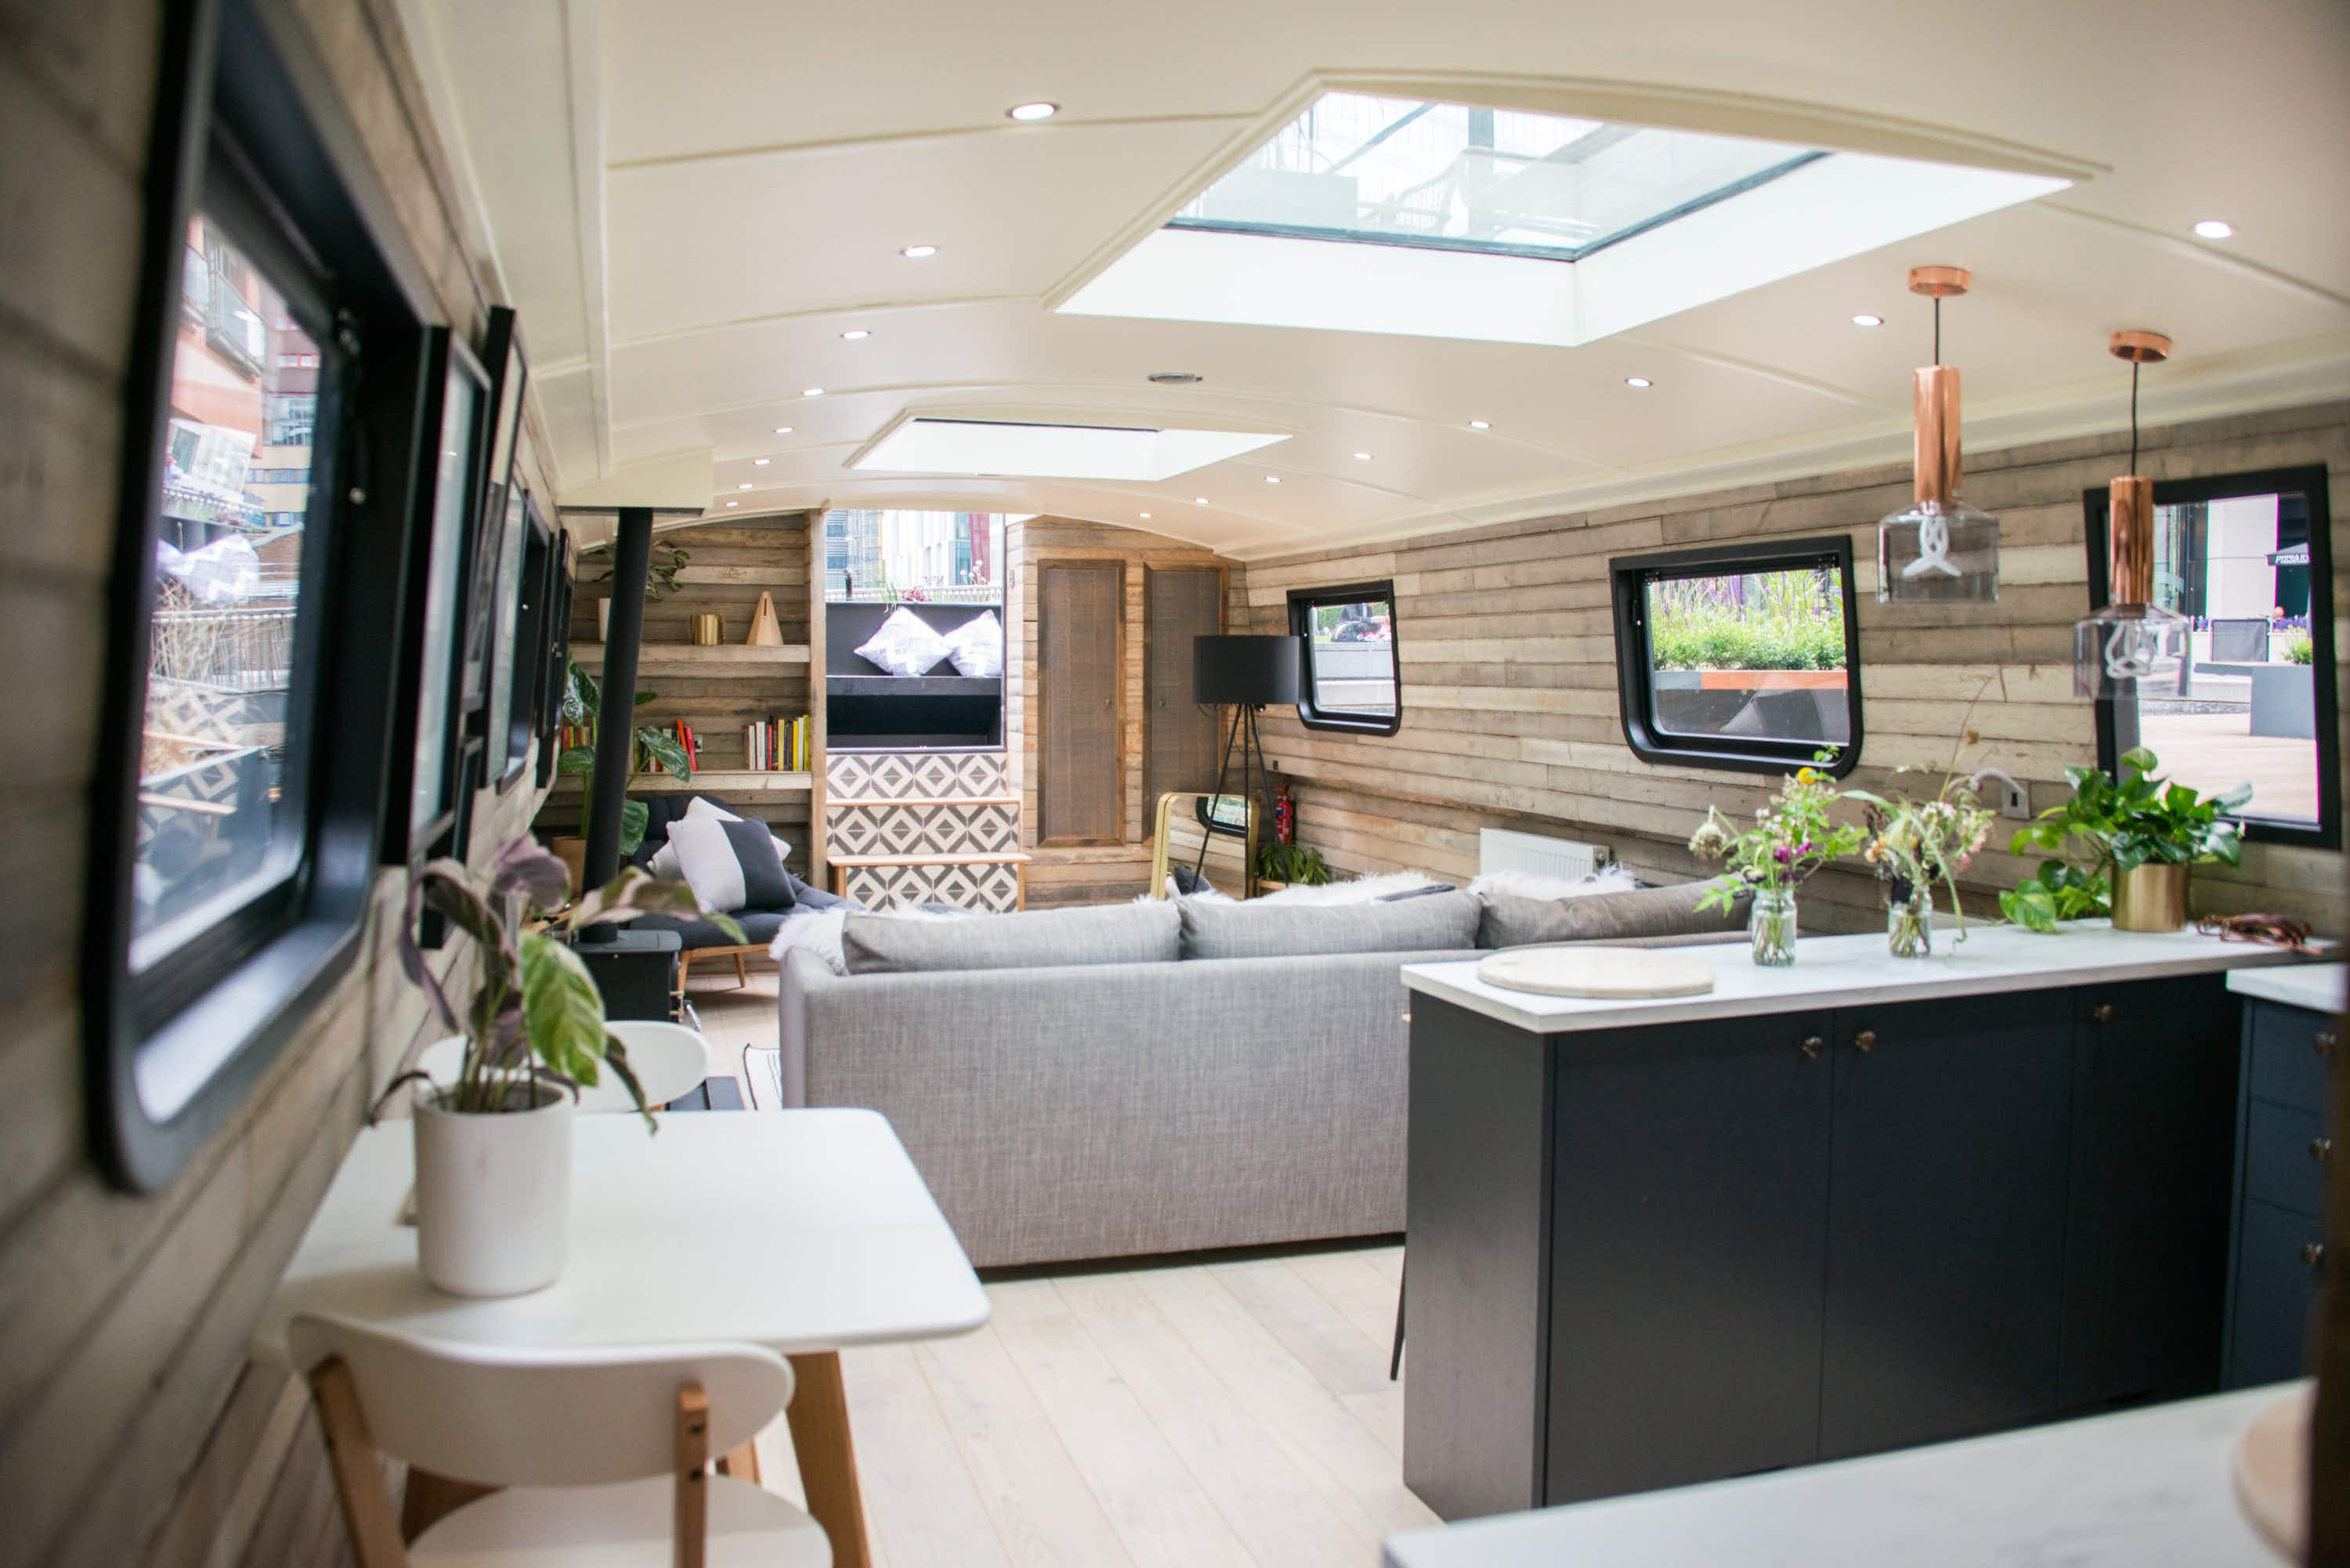 Spend the night on London's canals in this new boutique boat hotel